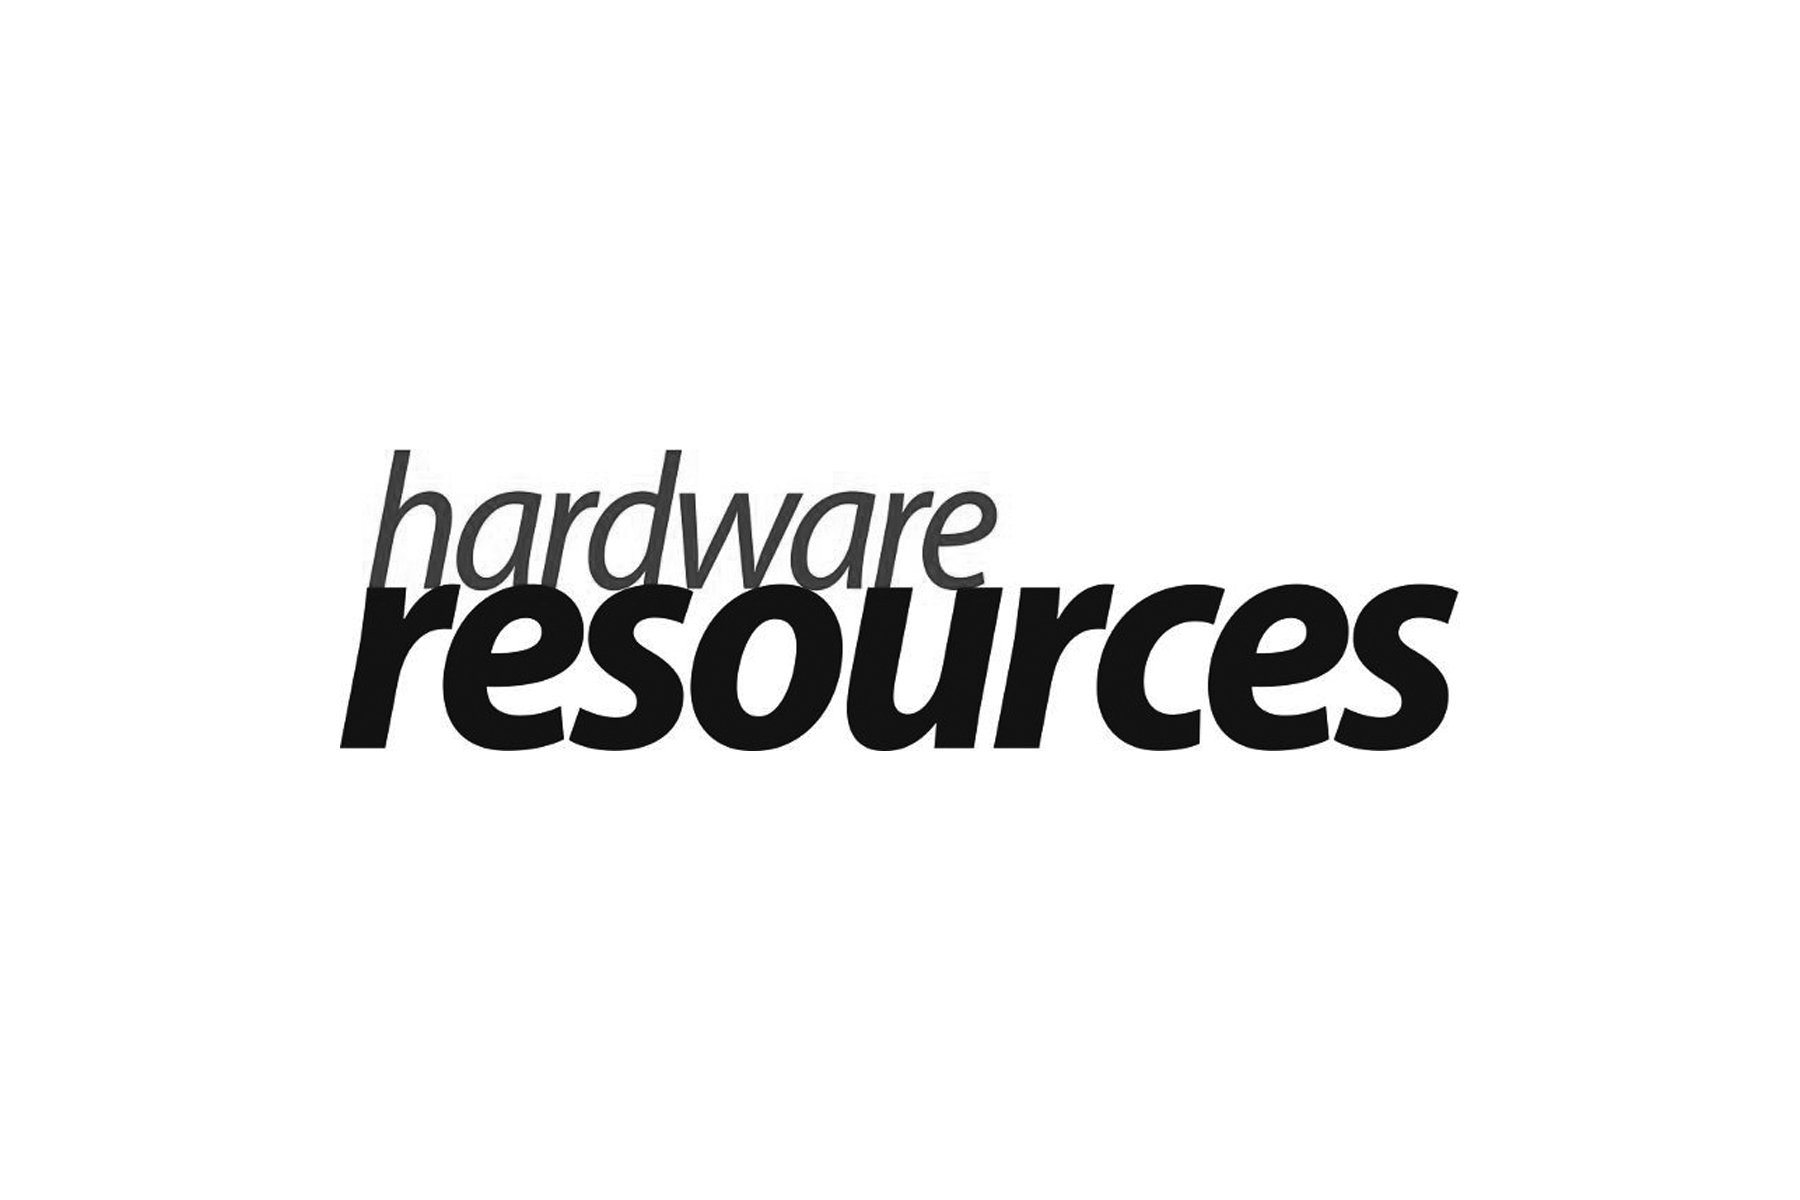 Hardware Resources GS.jpg